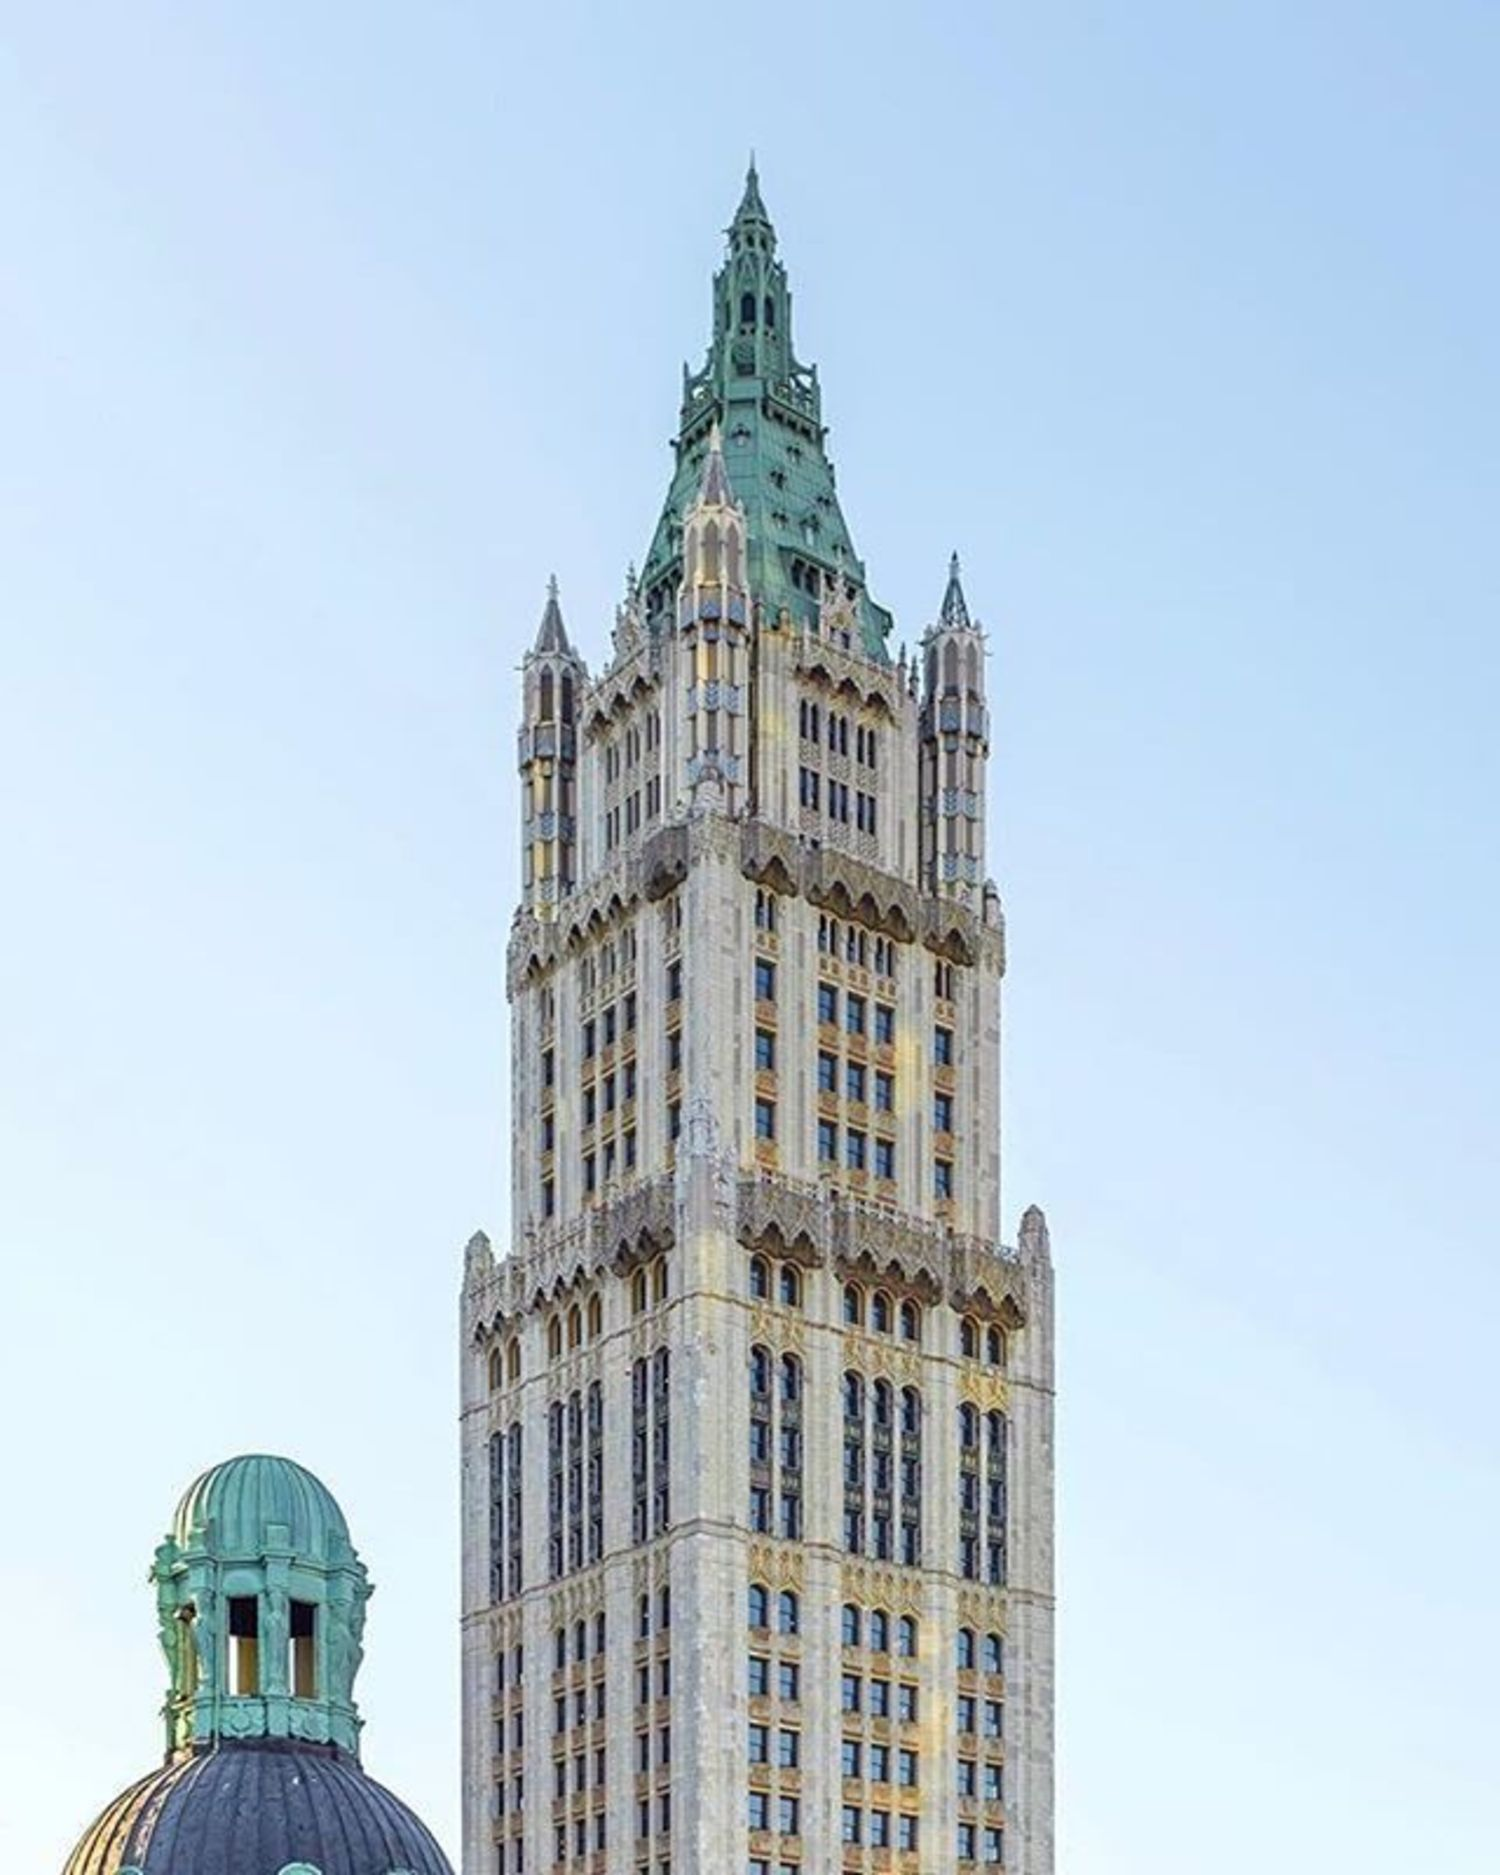 Woolworth Building, New York, New York. Photo via @ch3m1st #viewingnyc #newyork #newyorkcity #nyc